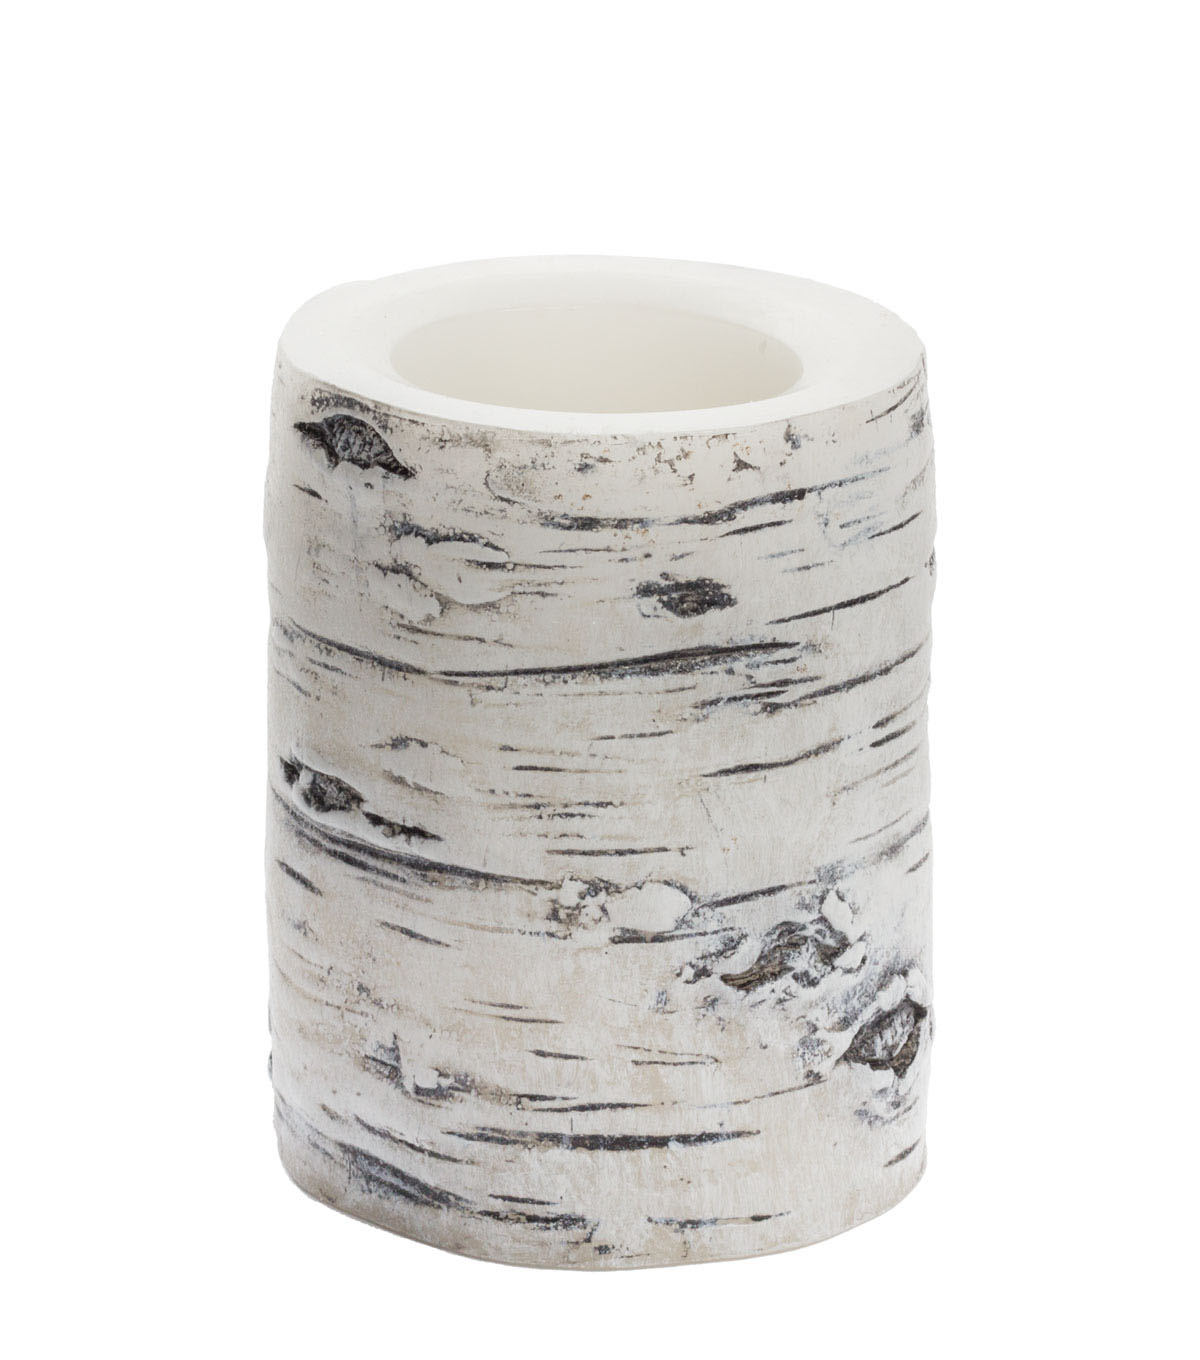 Hudson 43™ Candle & Light Collection 3X4 Wht Birch Bark Pillars With 5 Hour Timer